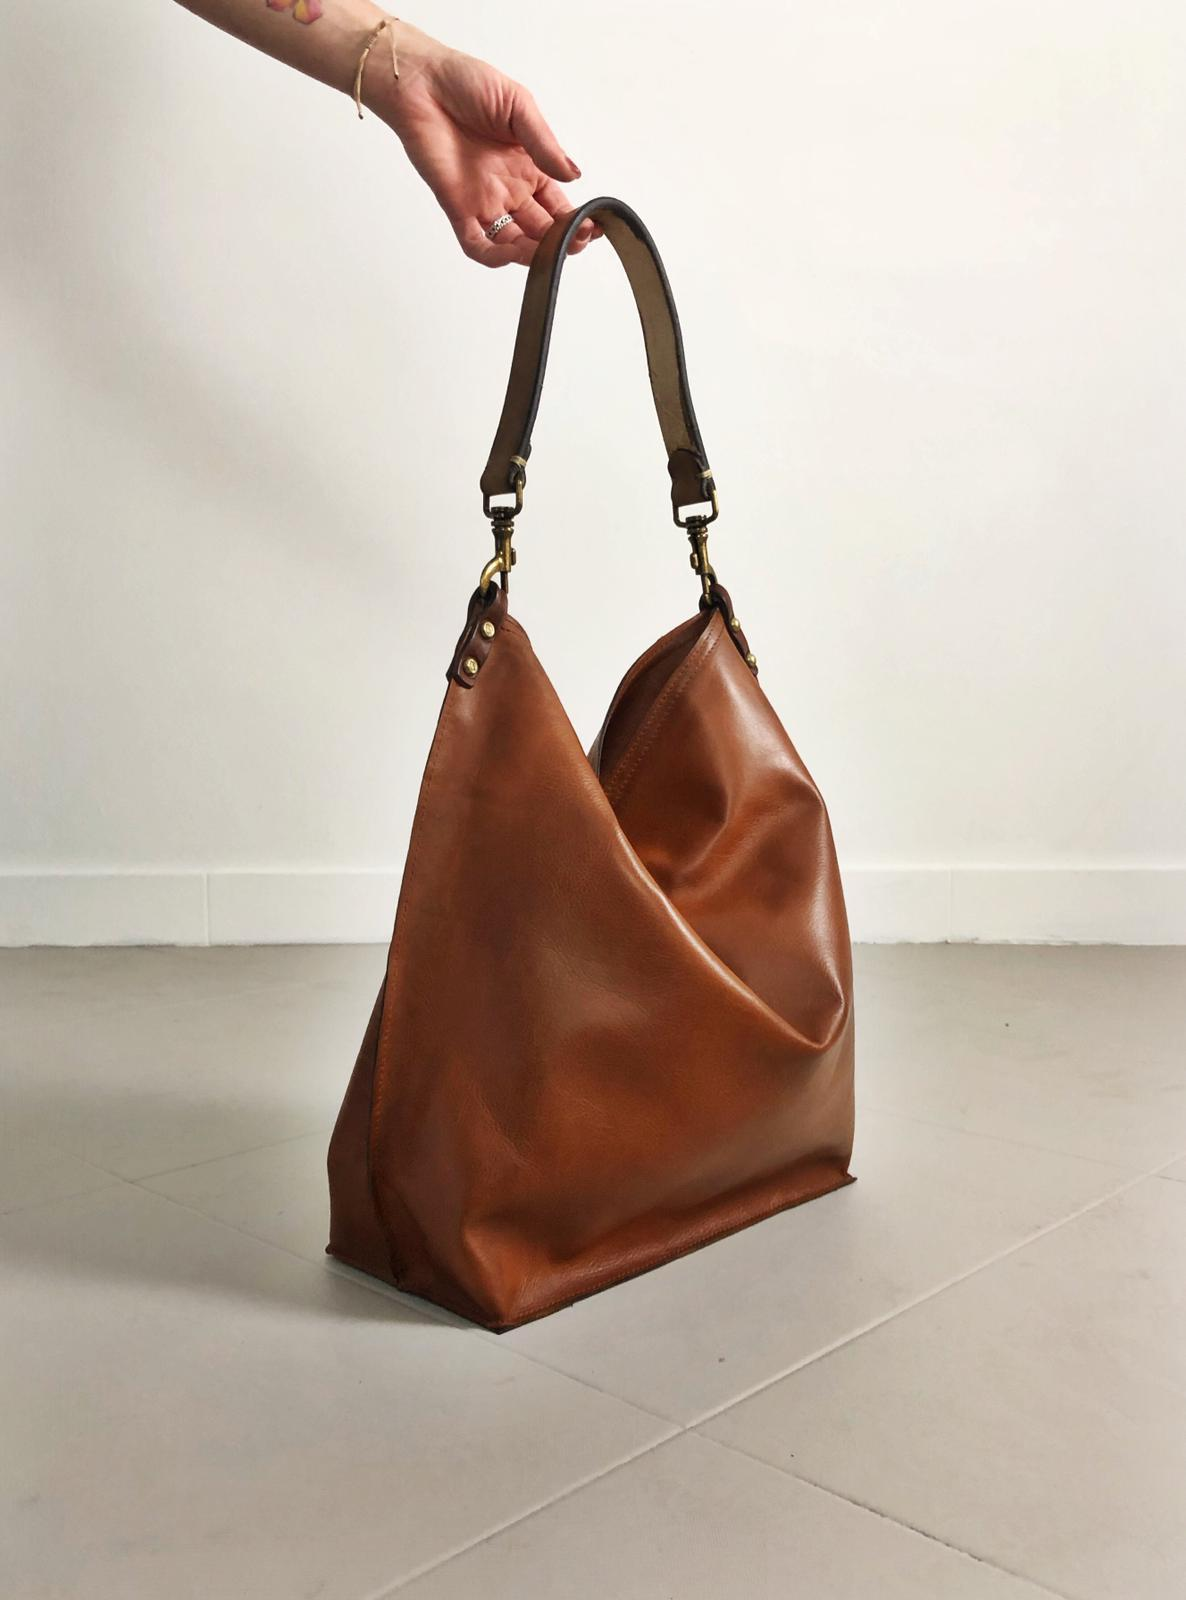 ALLEGRA BAG handmade leather bag